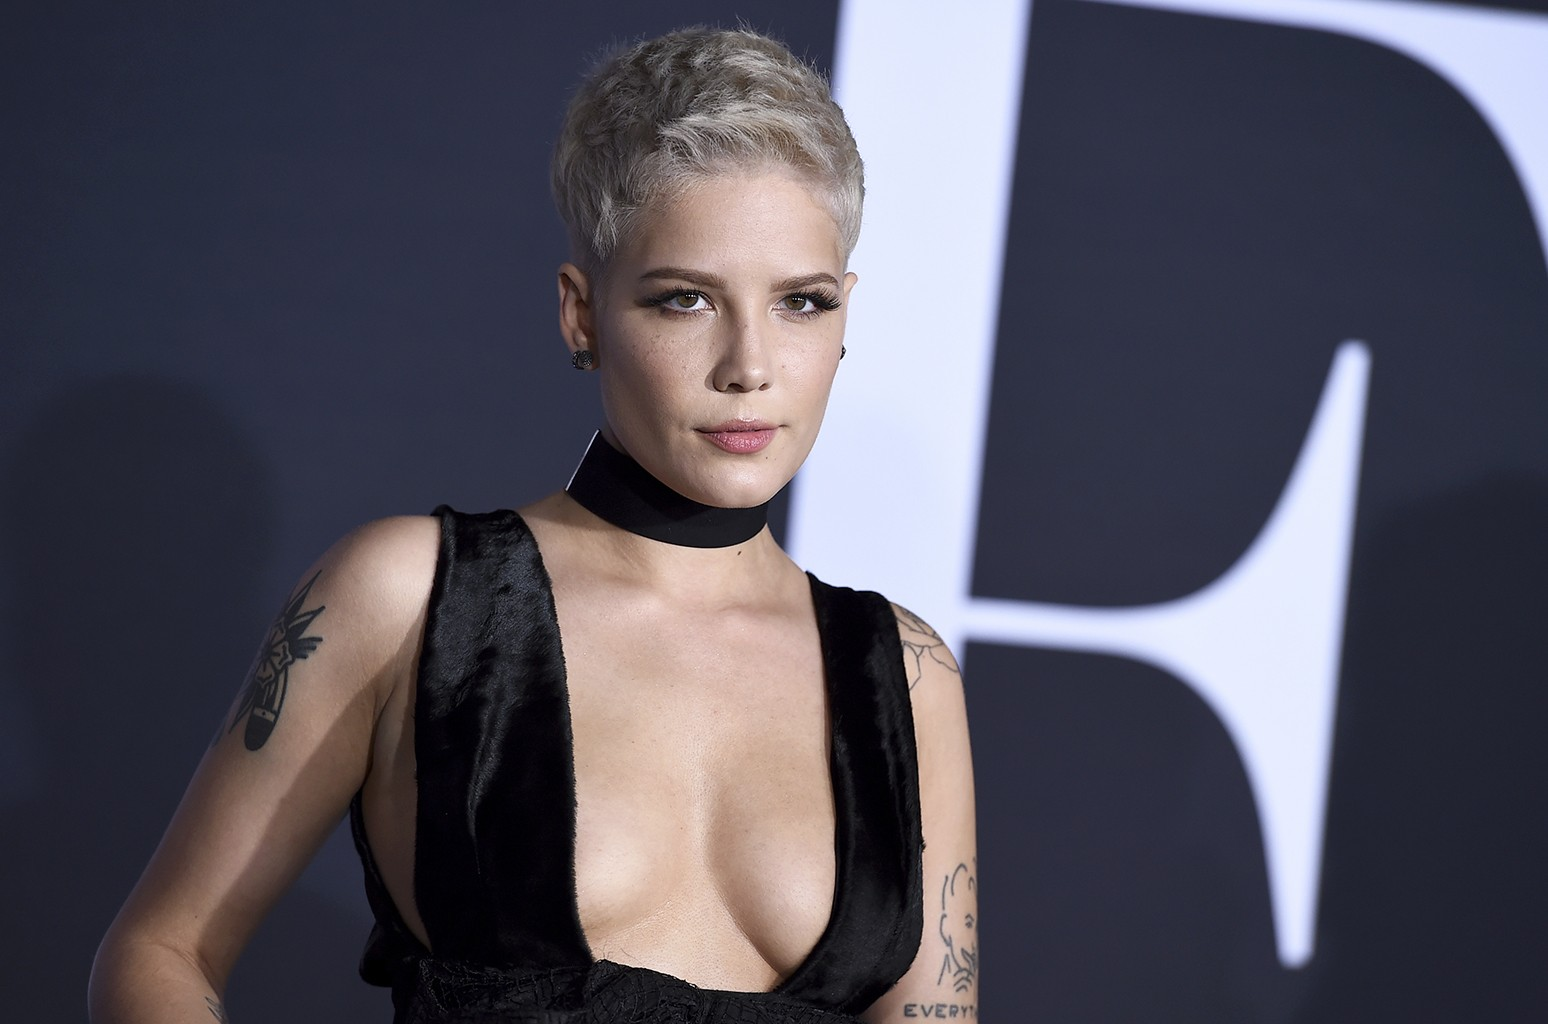 Halsey arrives at the Los Angeles premiere of Fifty Shades Darker at The Theatre at Ace Hotel on Feb, 2, 2017.